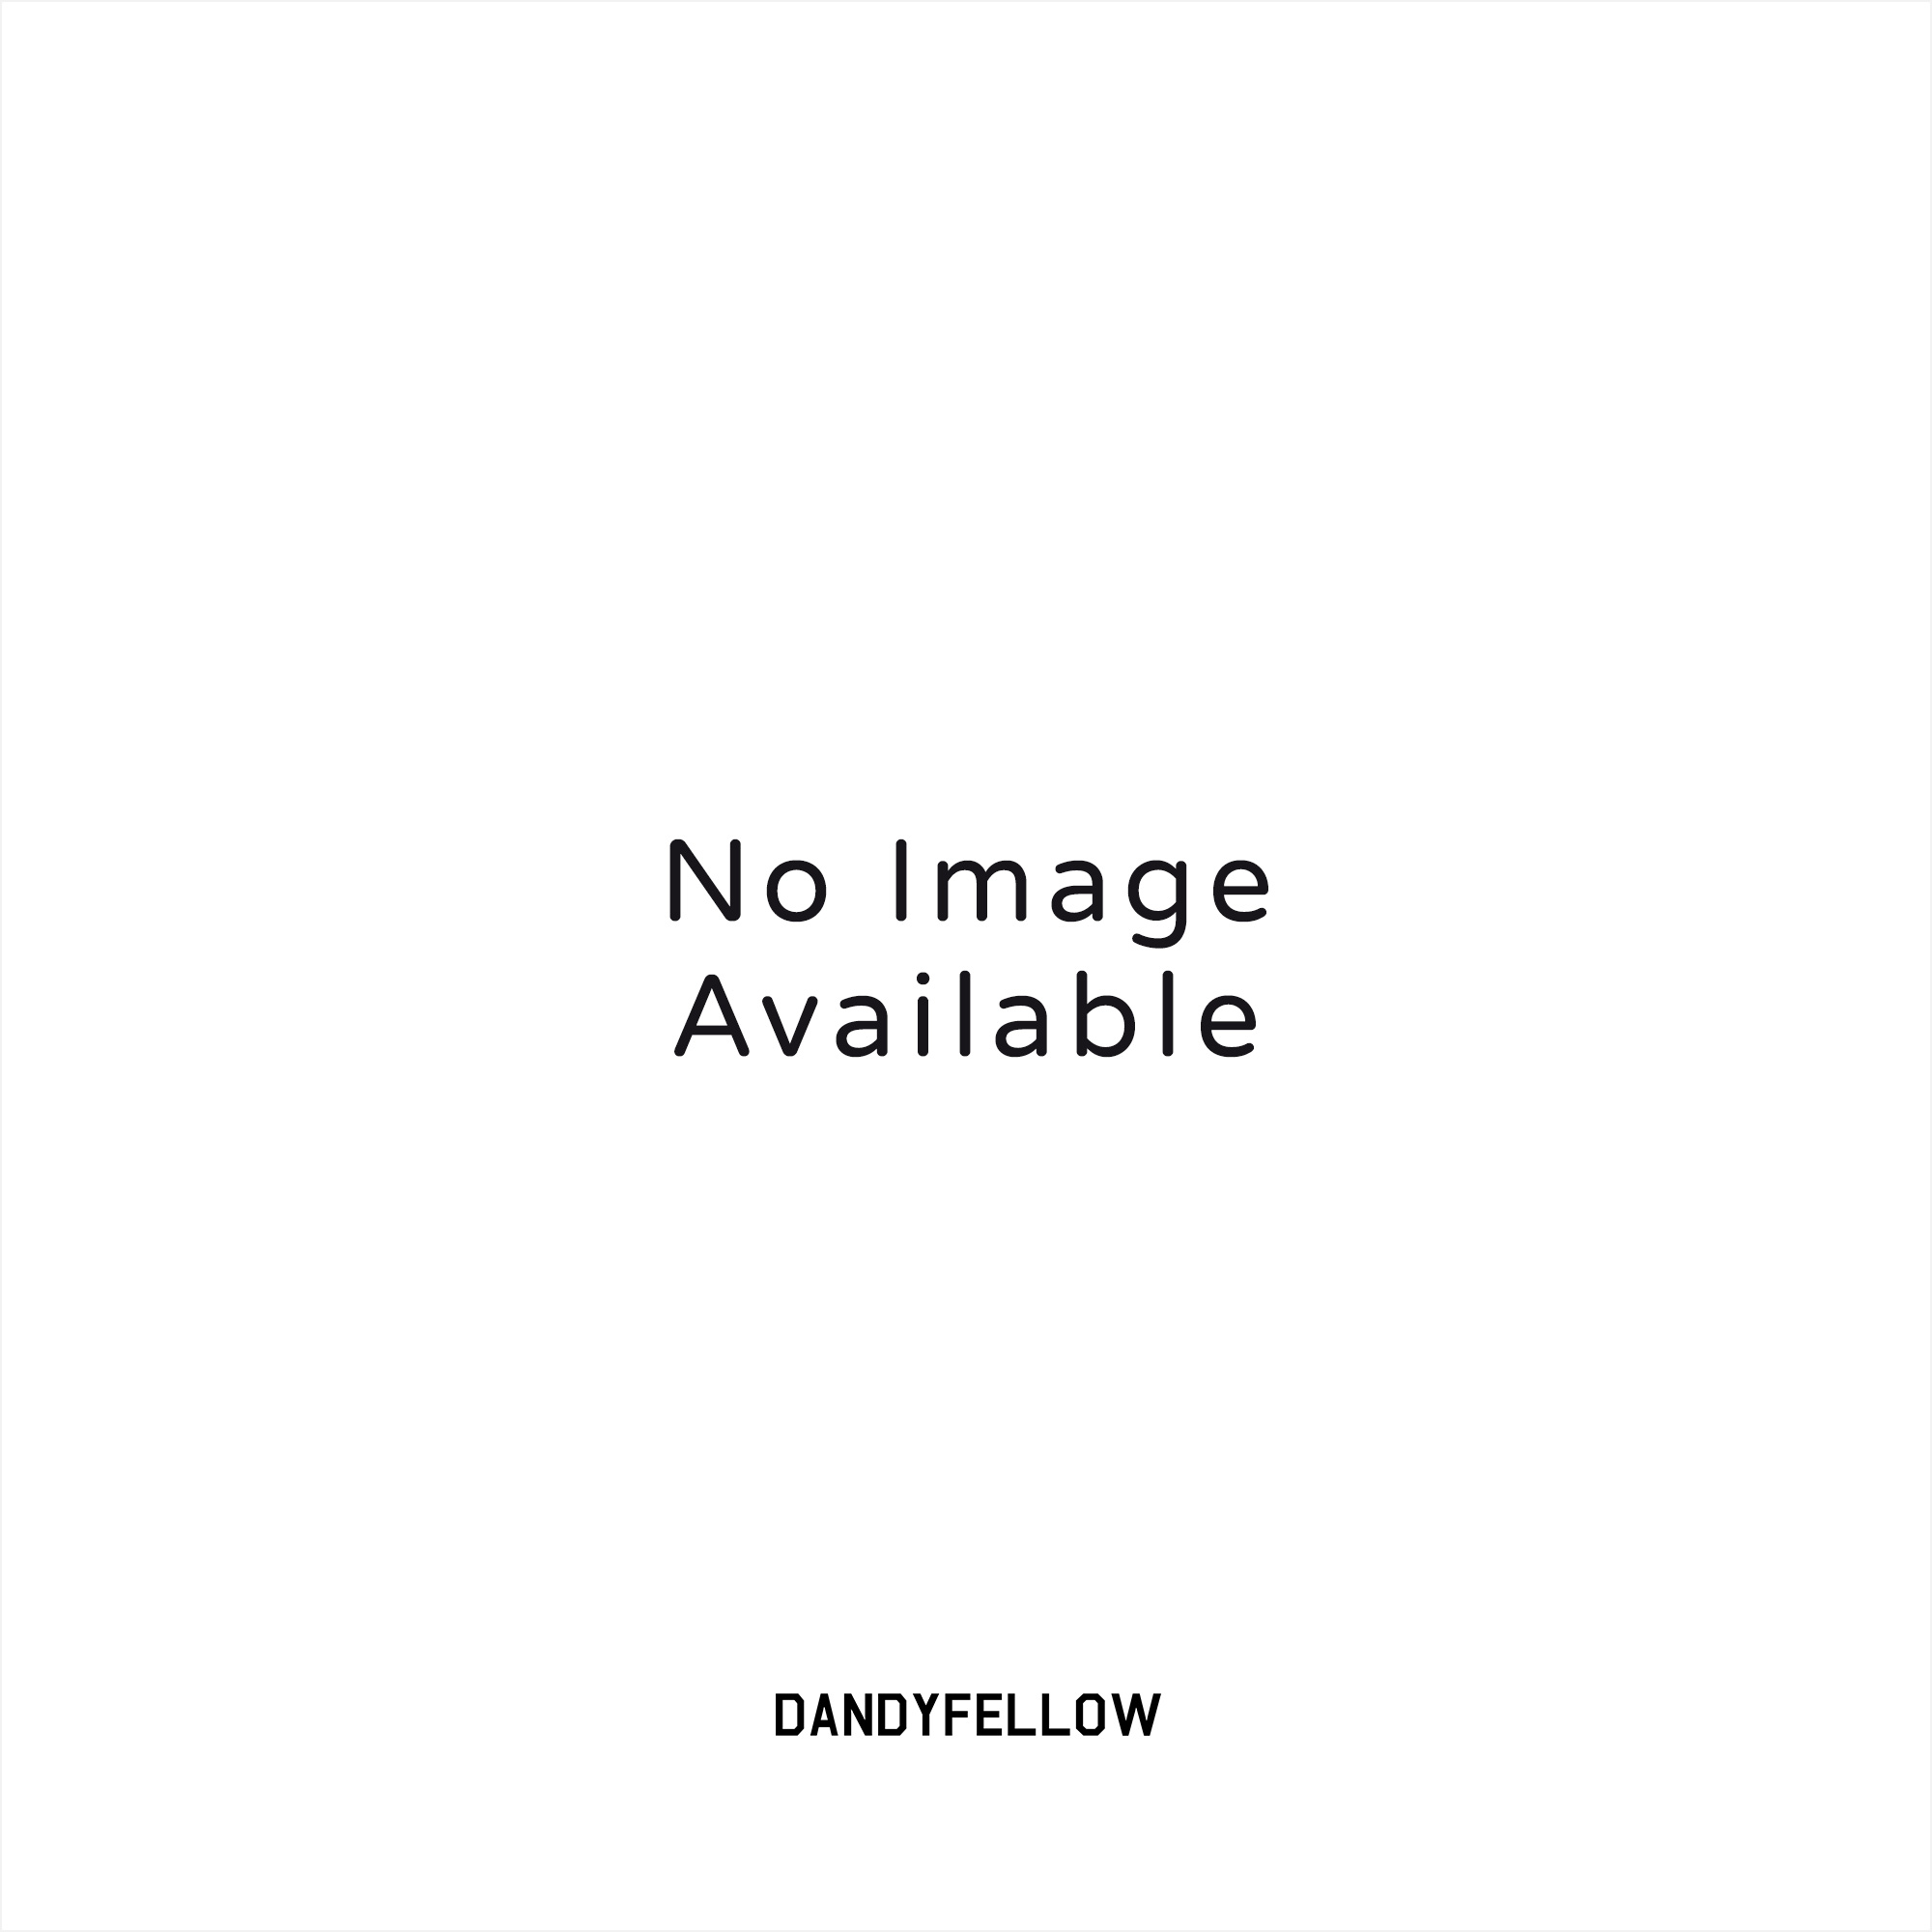 ed562a1e365f Nike Air Max 95 PRM (Oil Grey   Bright Mango) at Dandy Fellow